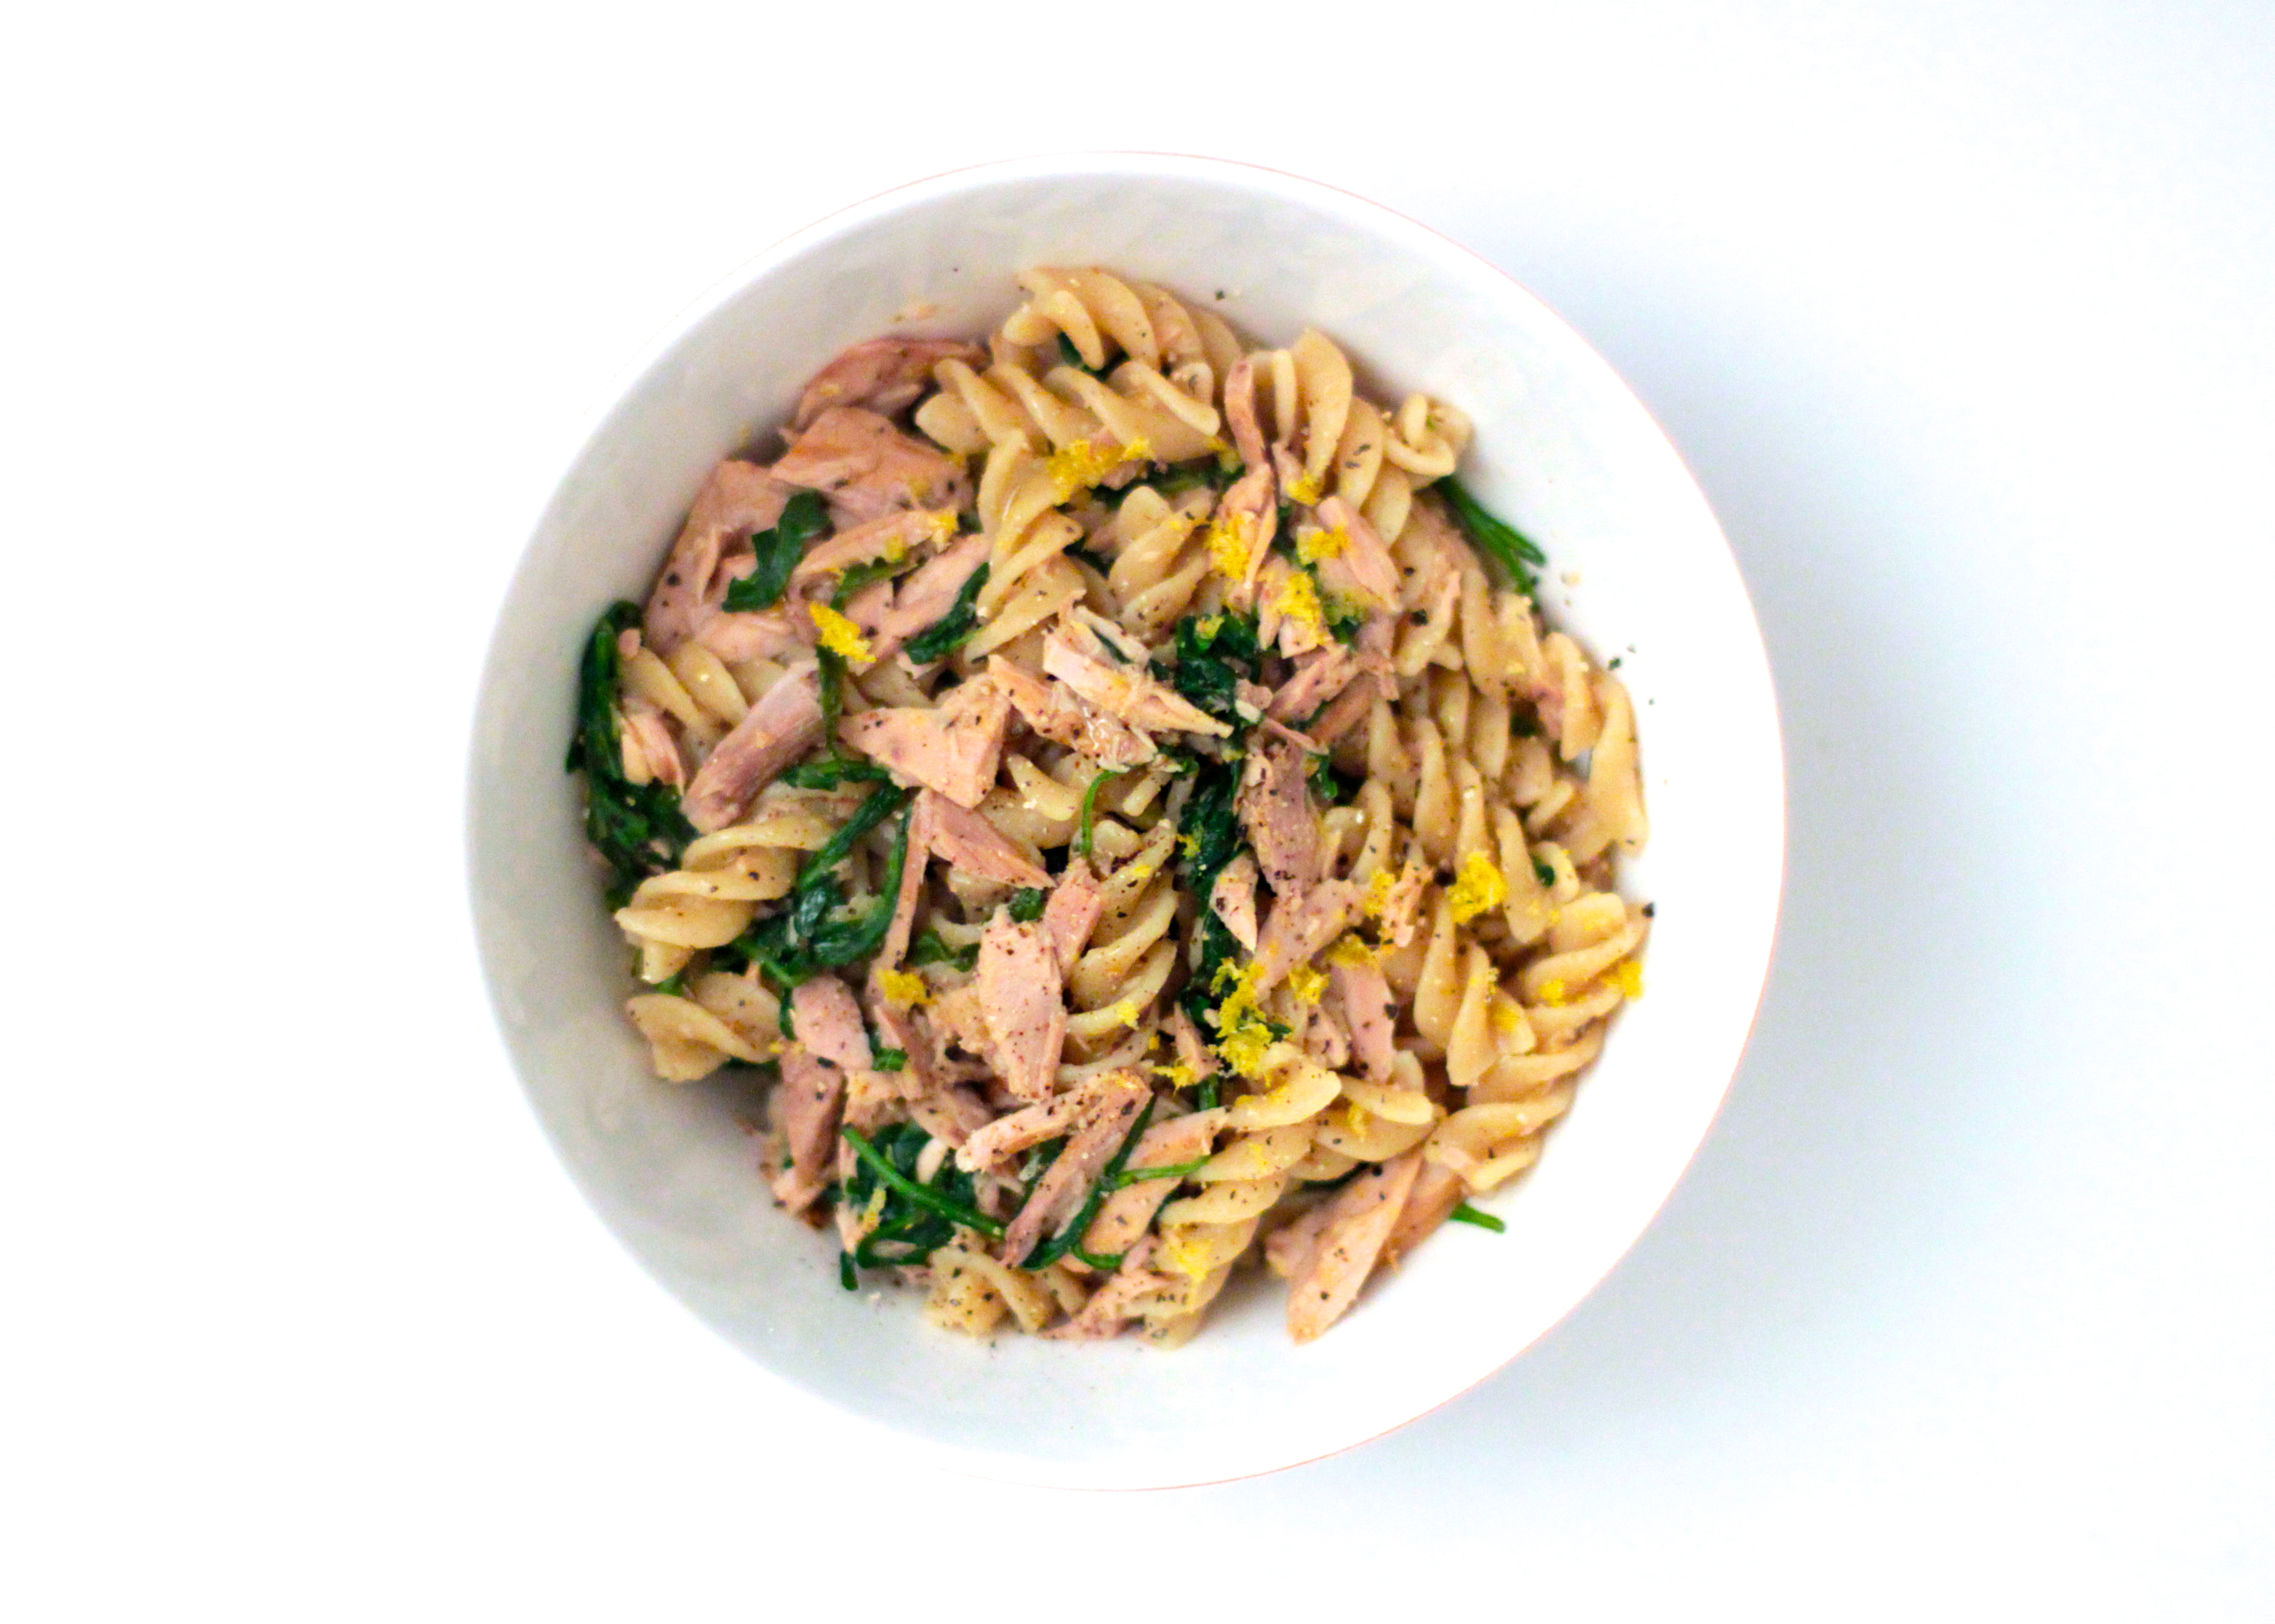 Pasta with Tuna, Lemon & Greens